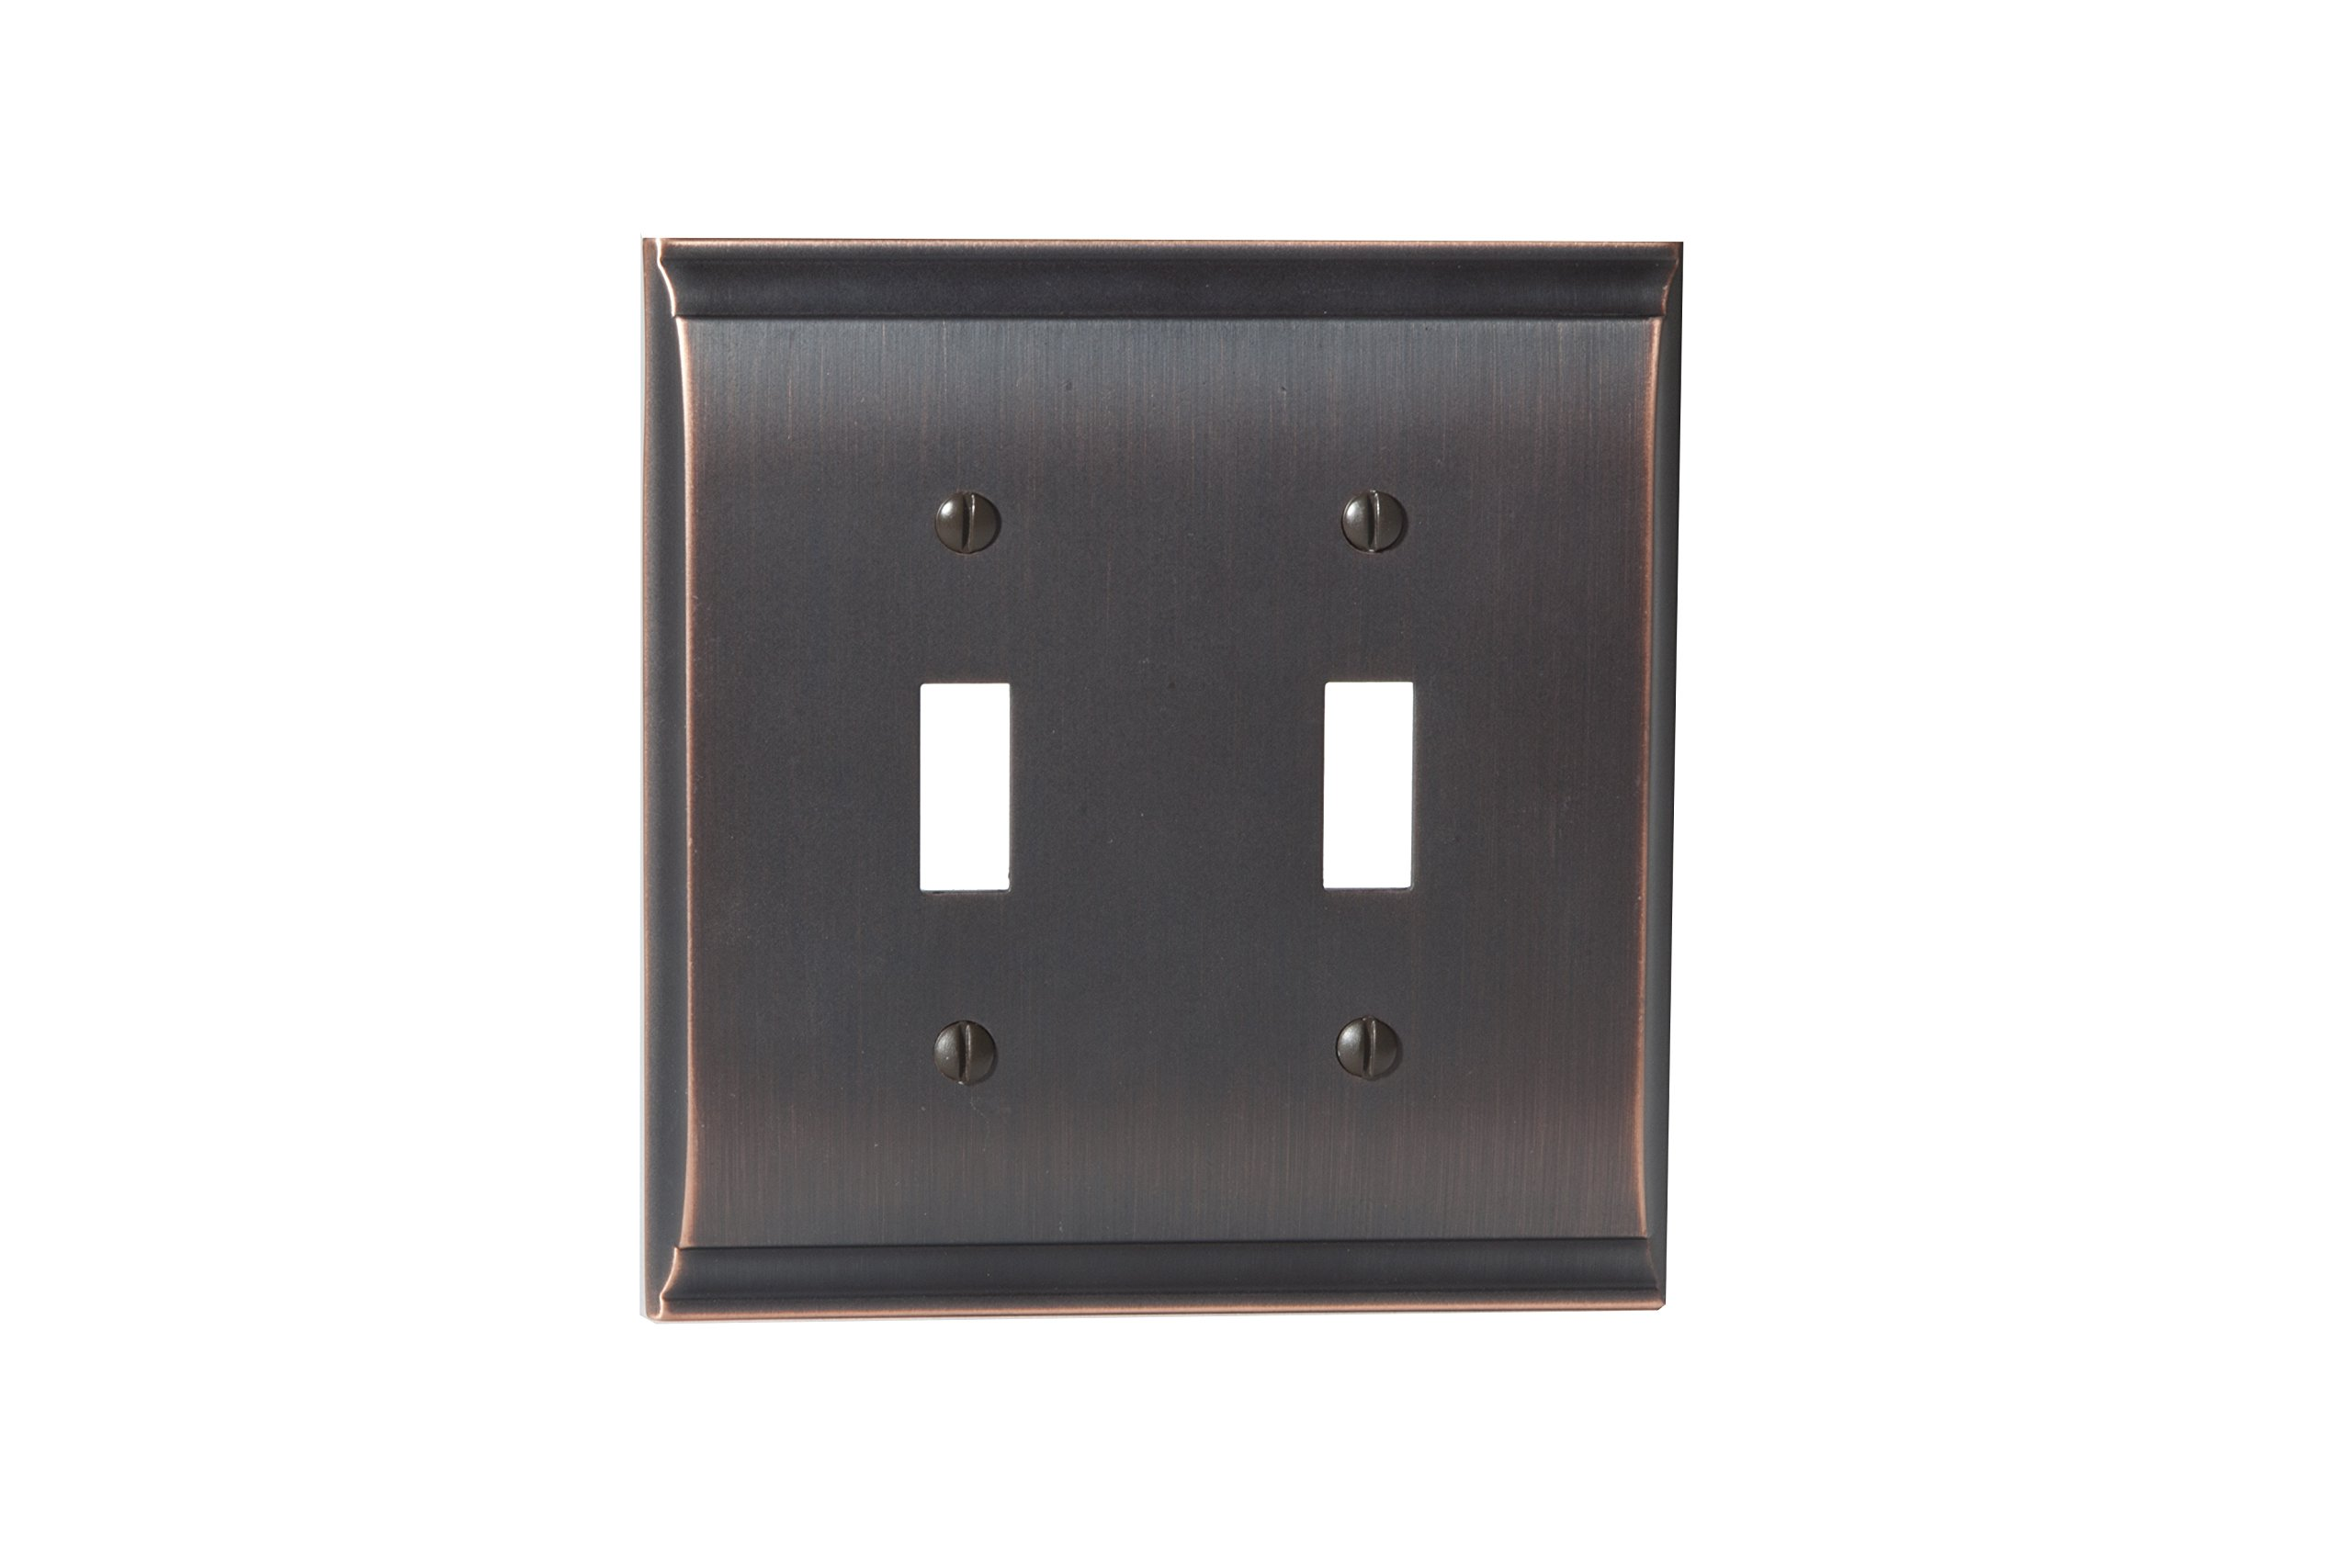 Amerock BP36501ORB Candler 2 Toggle Wall Plate - Oil-Rubbed Bronze by Amerock